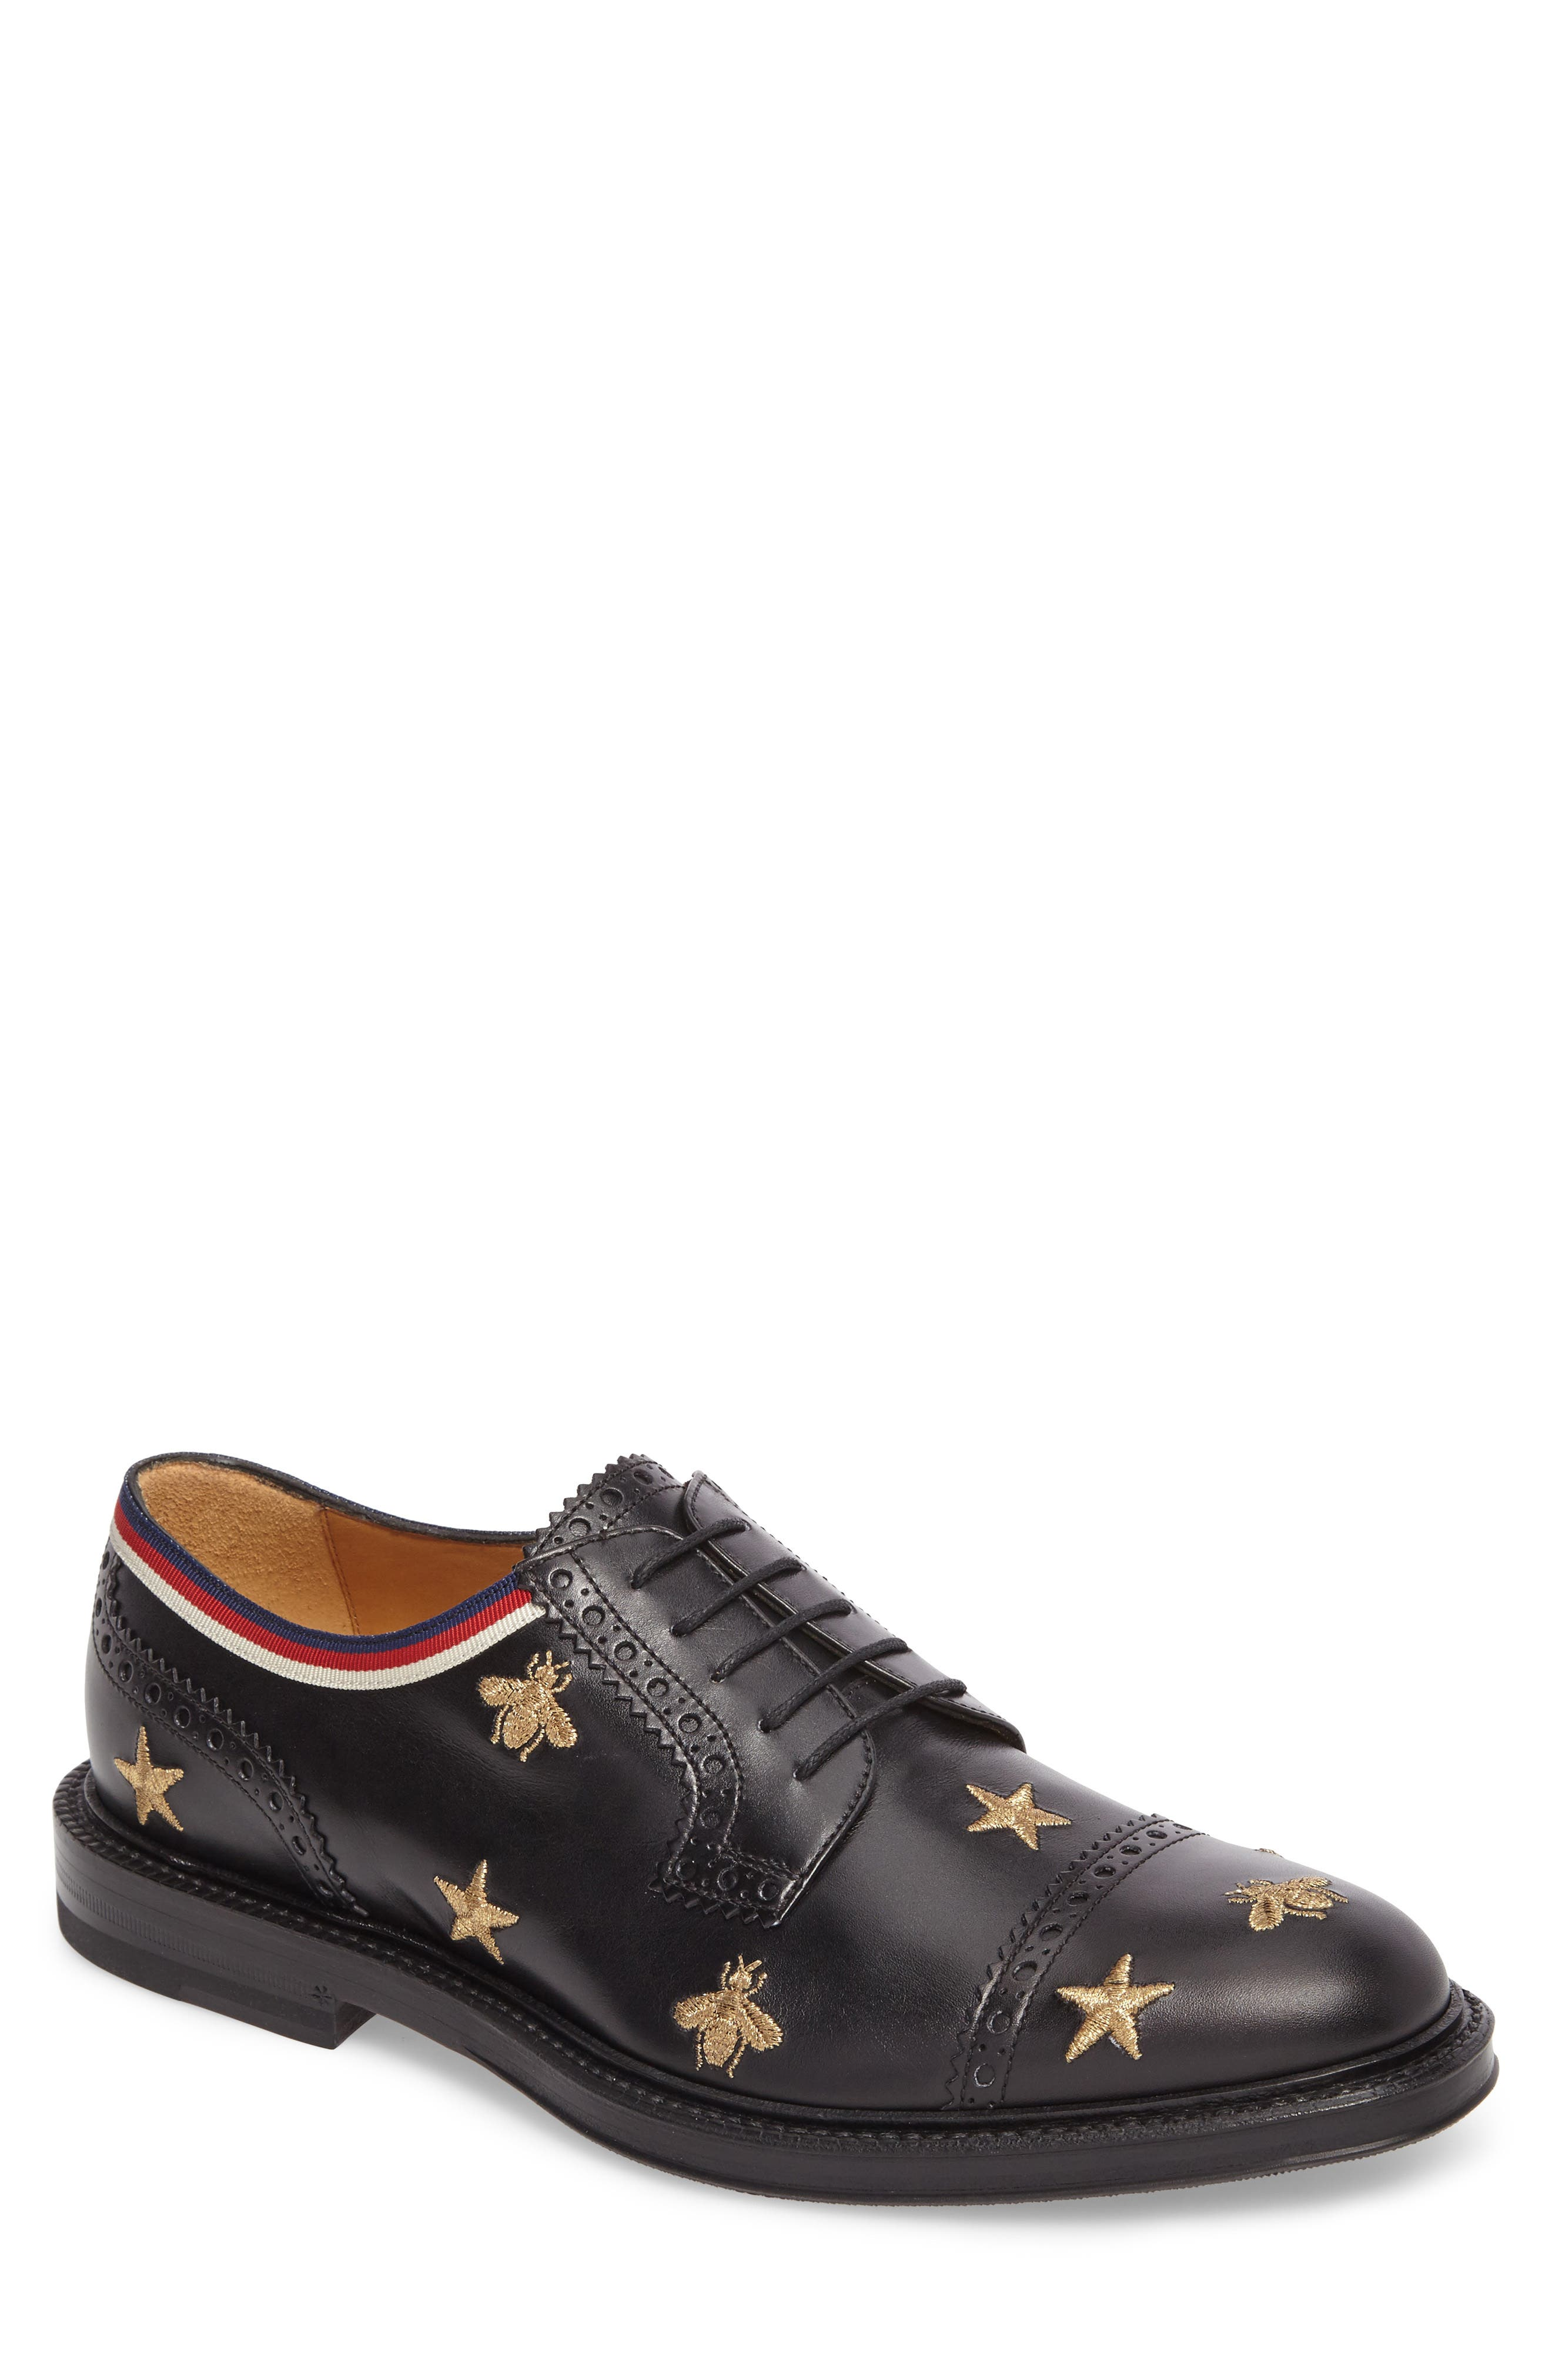 Beyond Star Bee Cap Toe Derby by Gucci